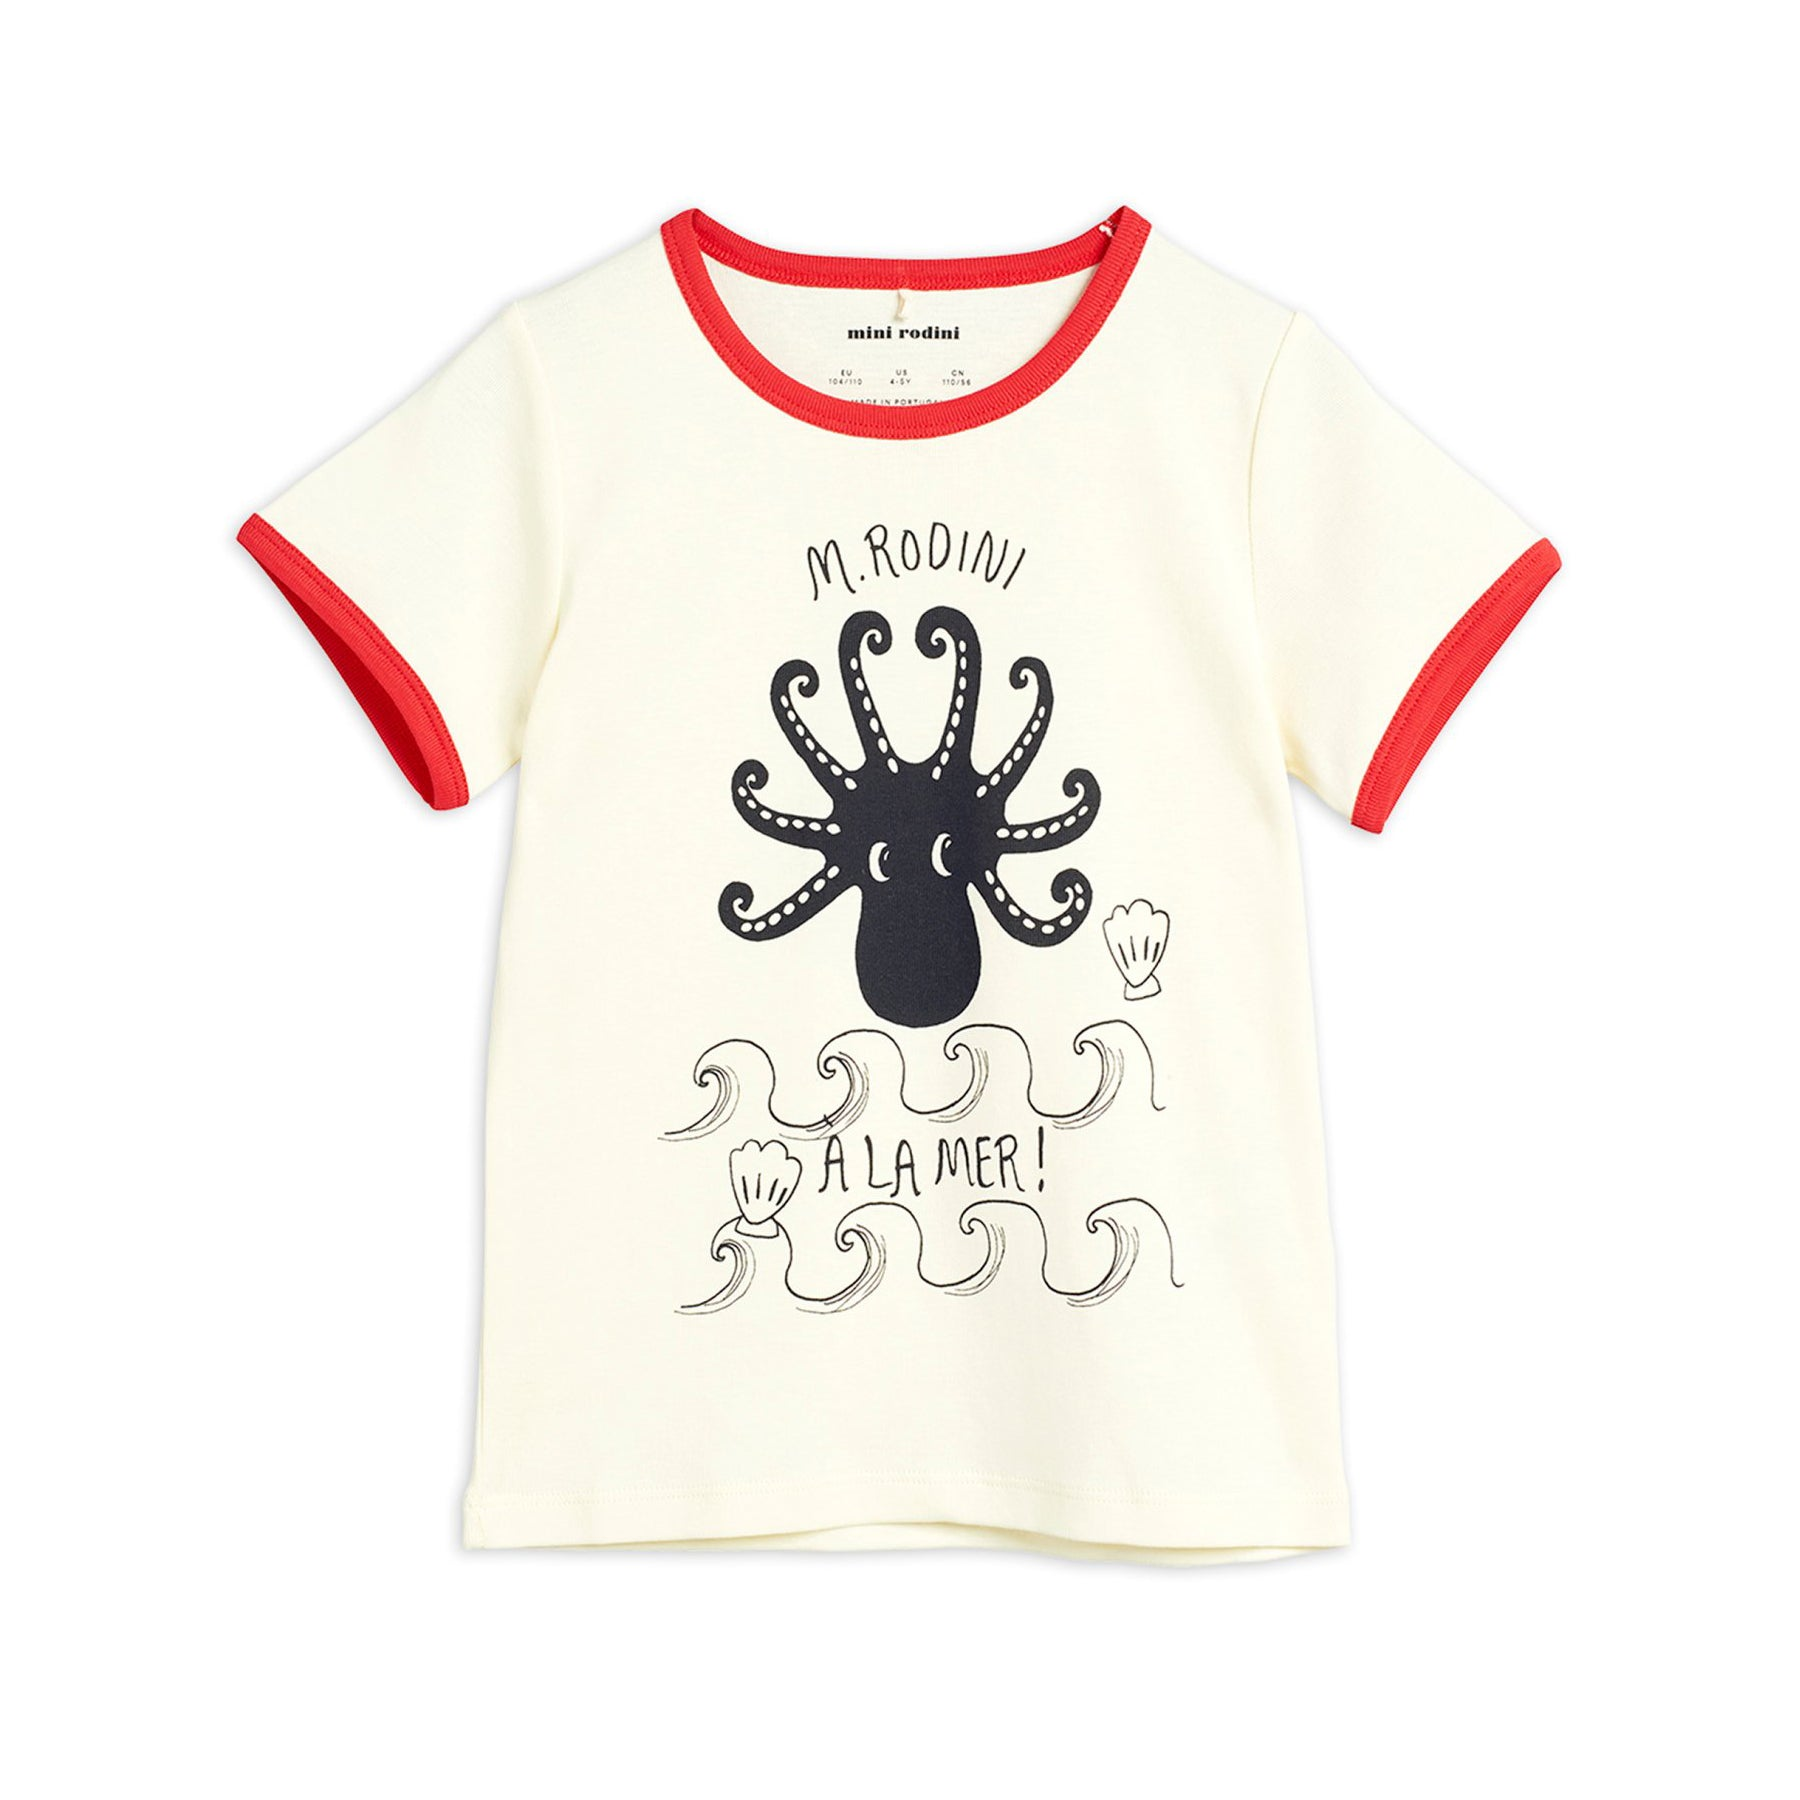 Mini Rodini octopus tee, red